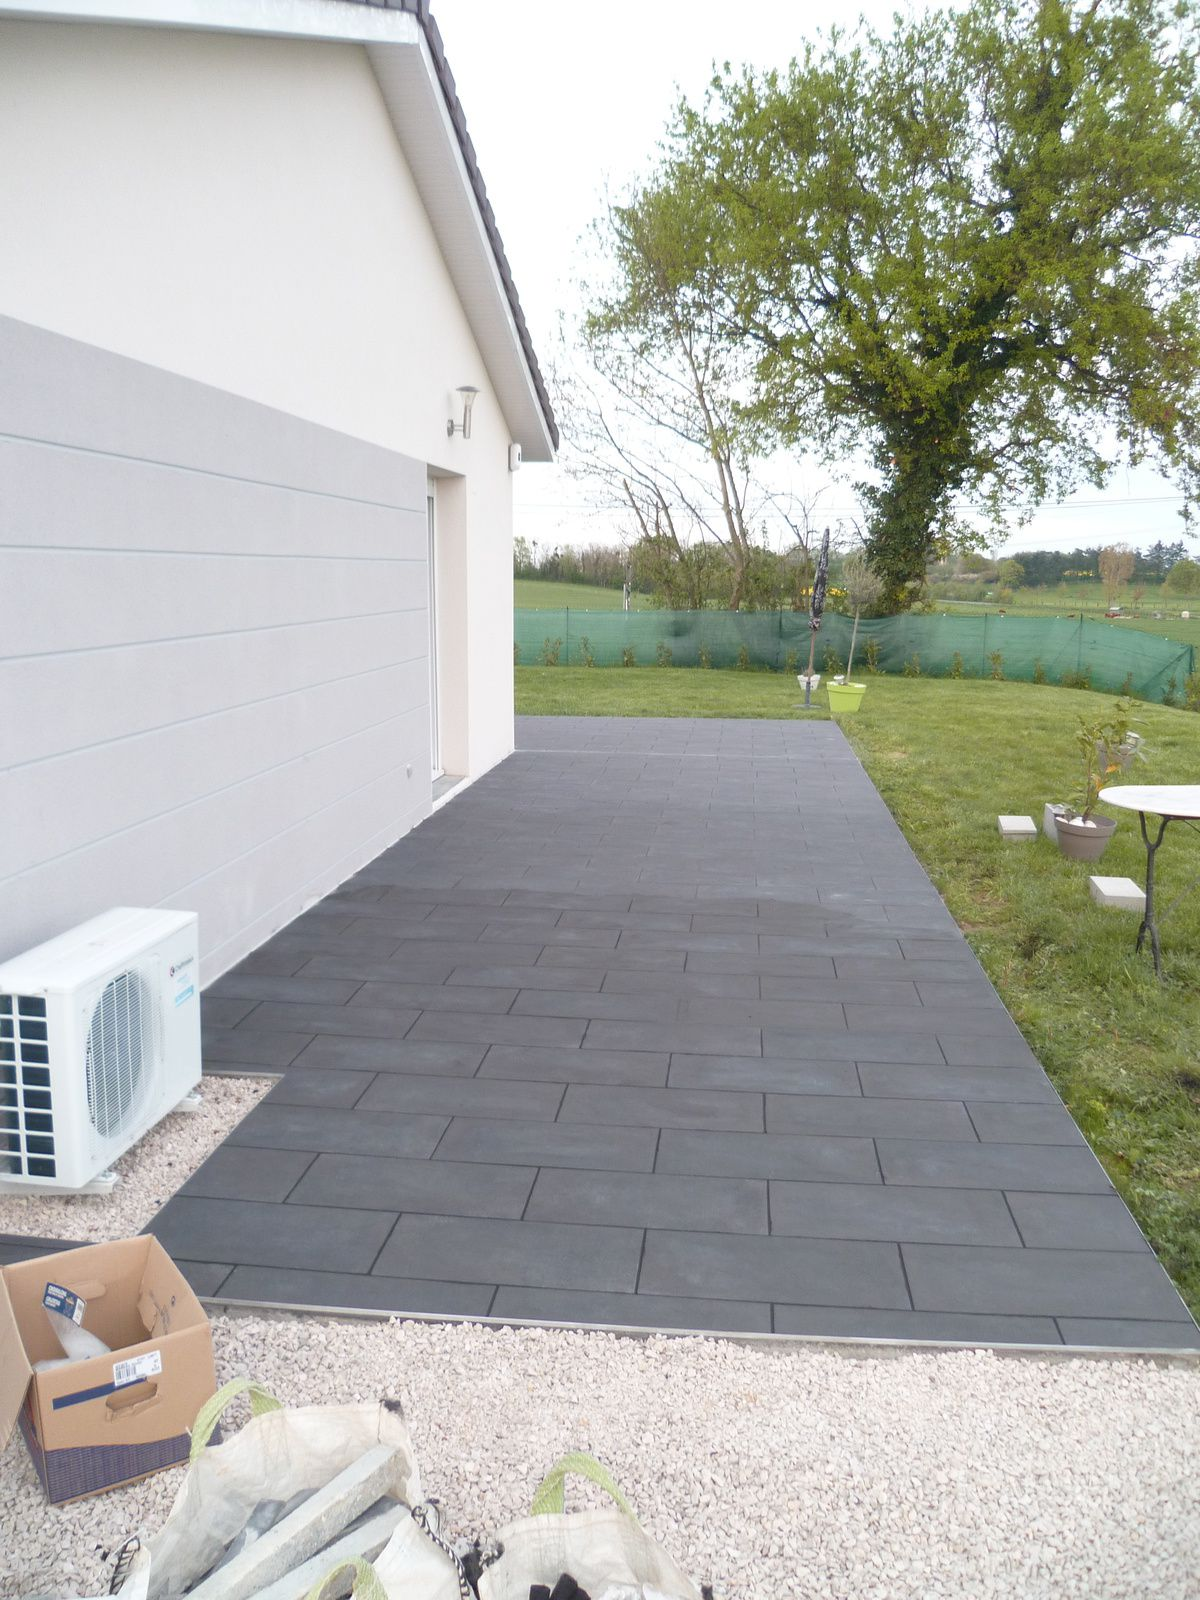 Pose carrelage sur dalle beton exterieur carrelage for Carrelage imitation caillebotis